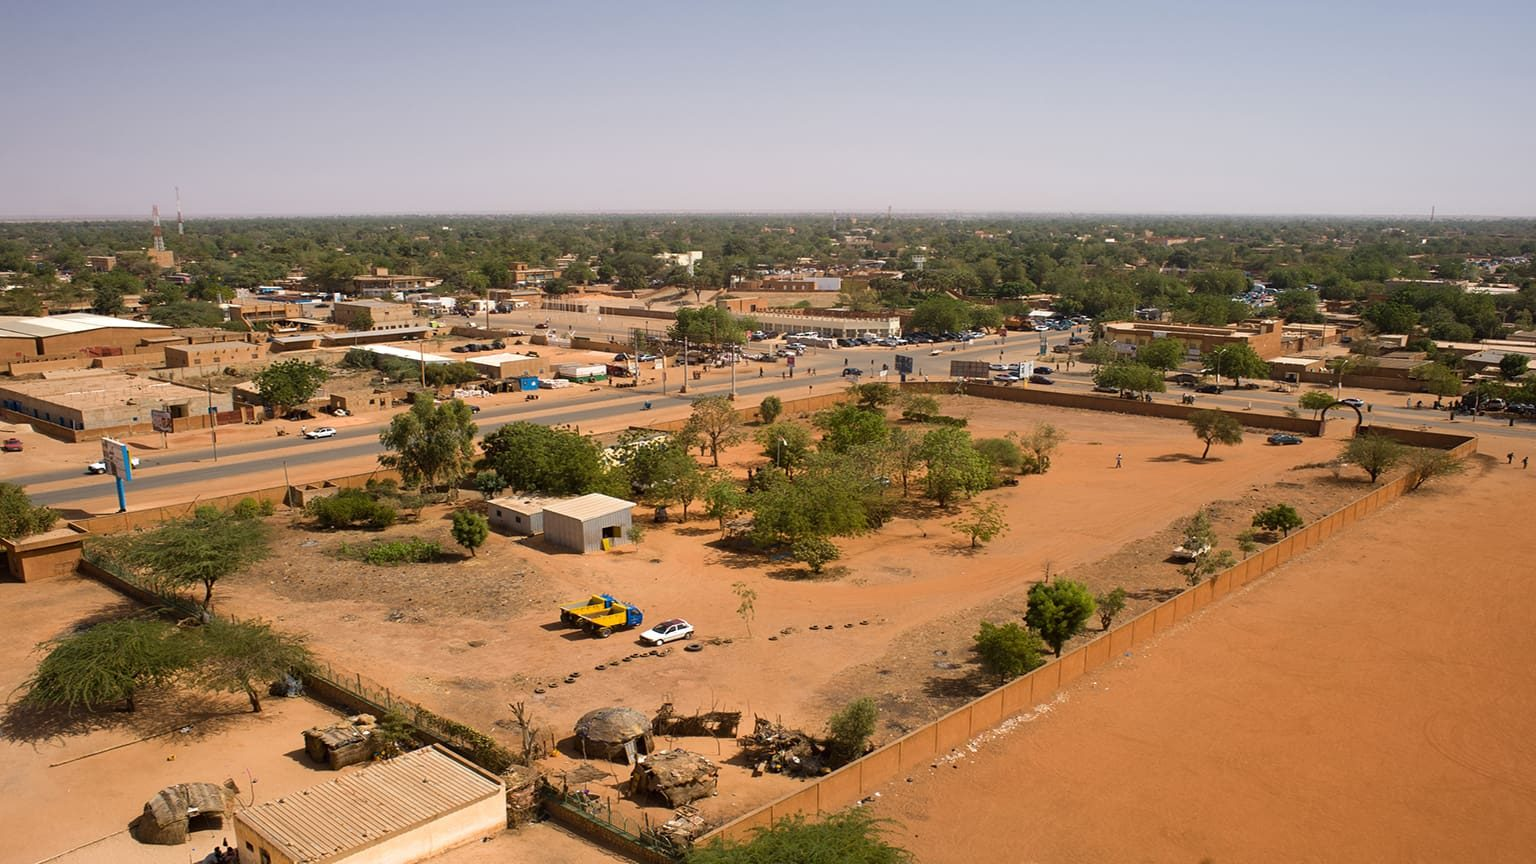 Aerial view of the African city of Niamey, Niger